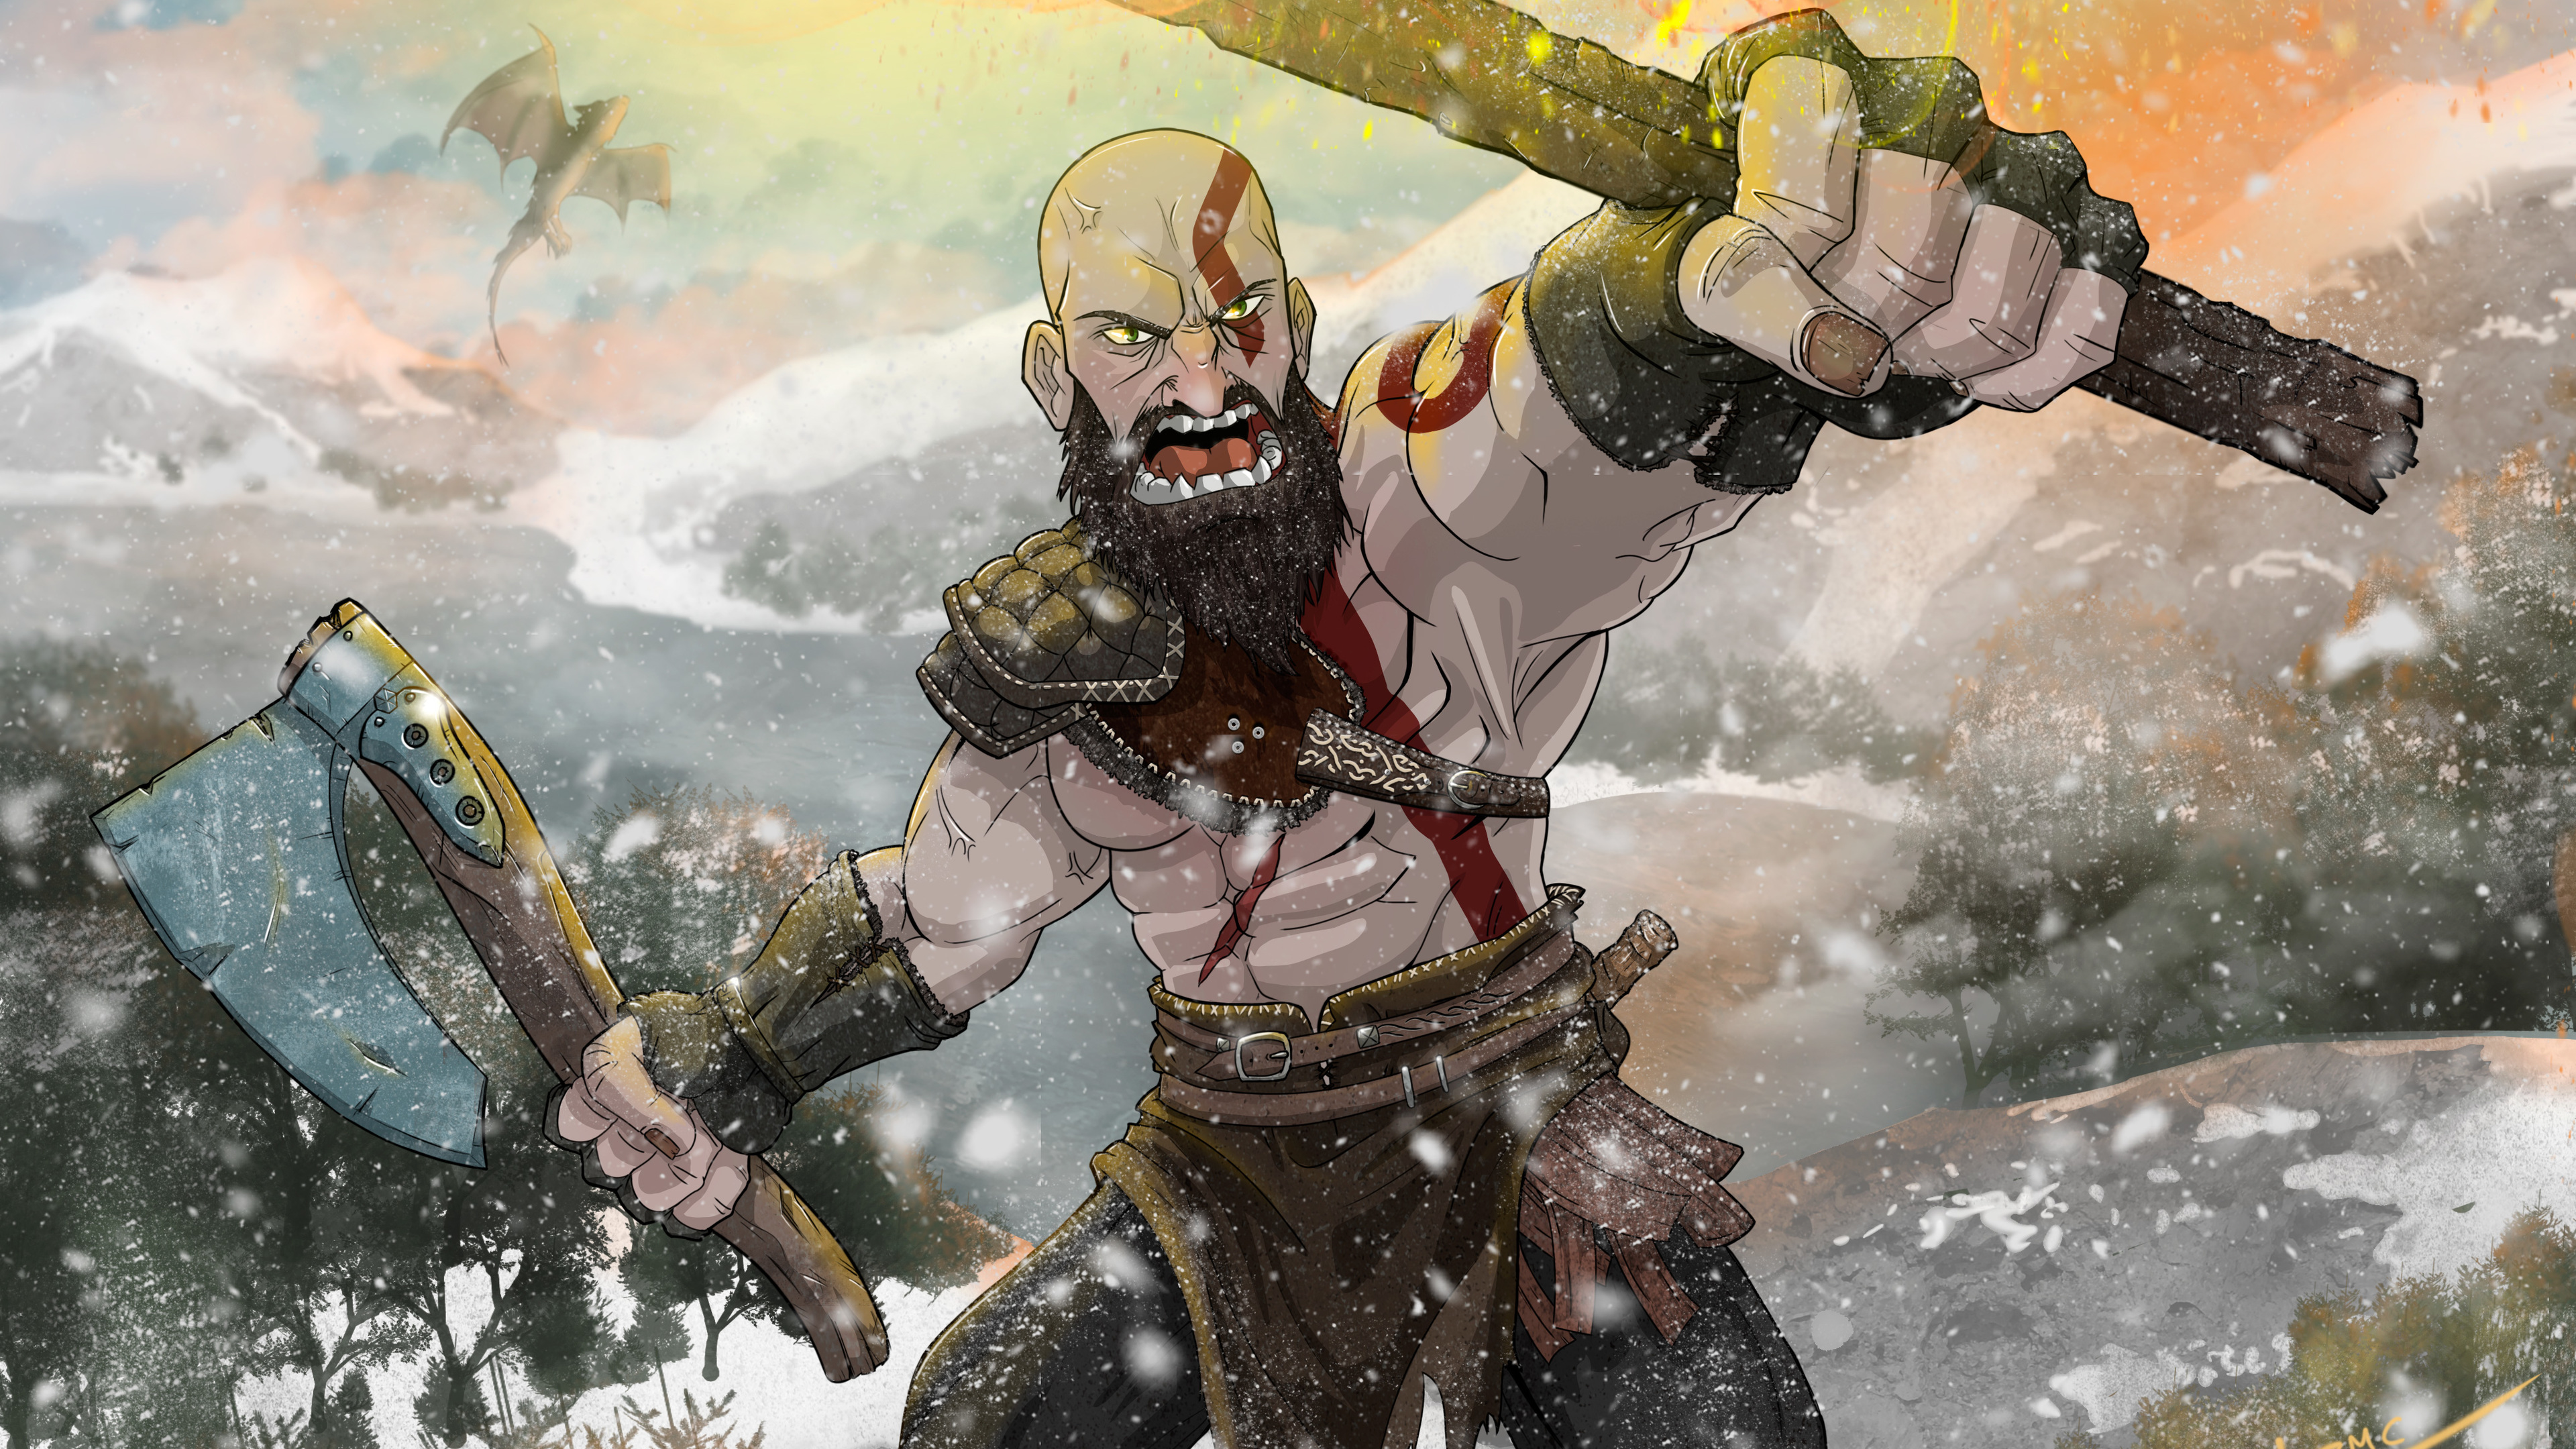 Wallpaper 4k Kratos God Of War Fan Art 4k 4k Wallpapers